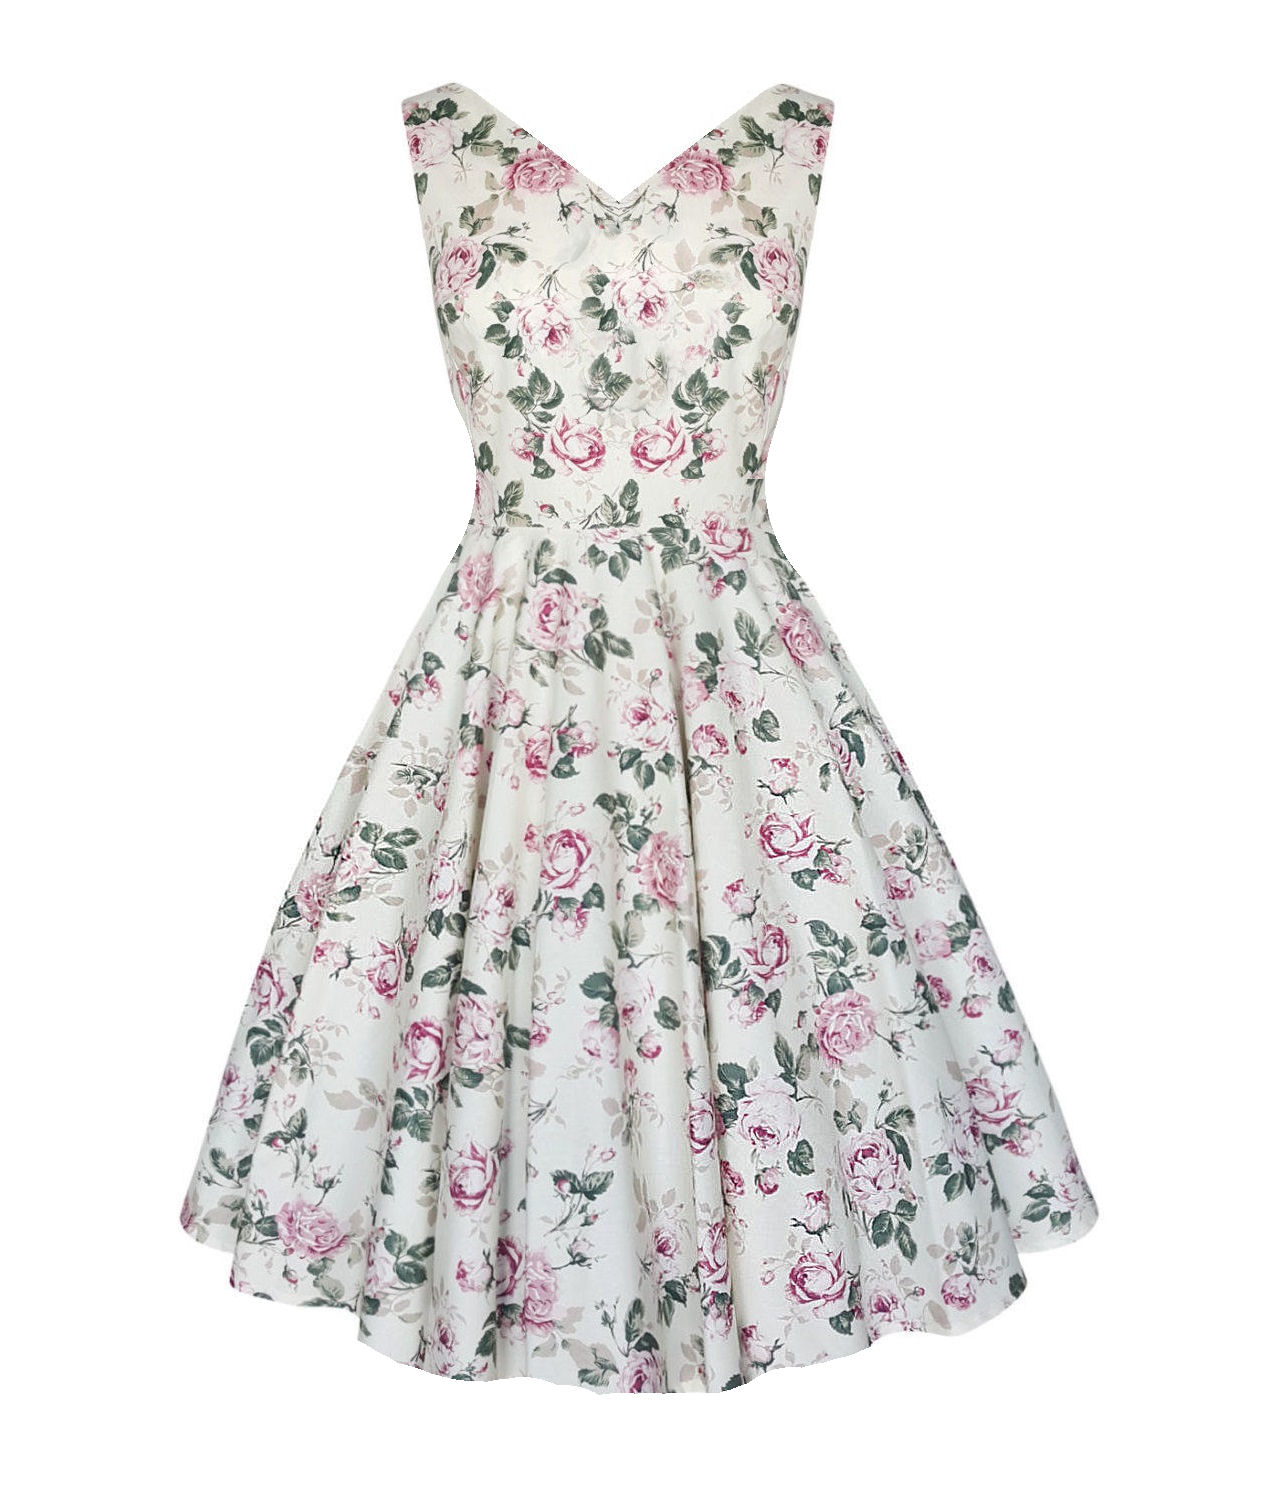 20dc8da37d5b Lily English rose floral vintage style v neck full skirt dress. Available  up ...